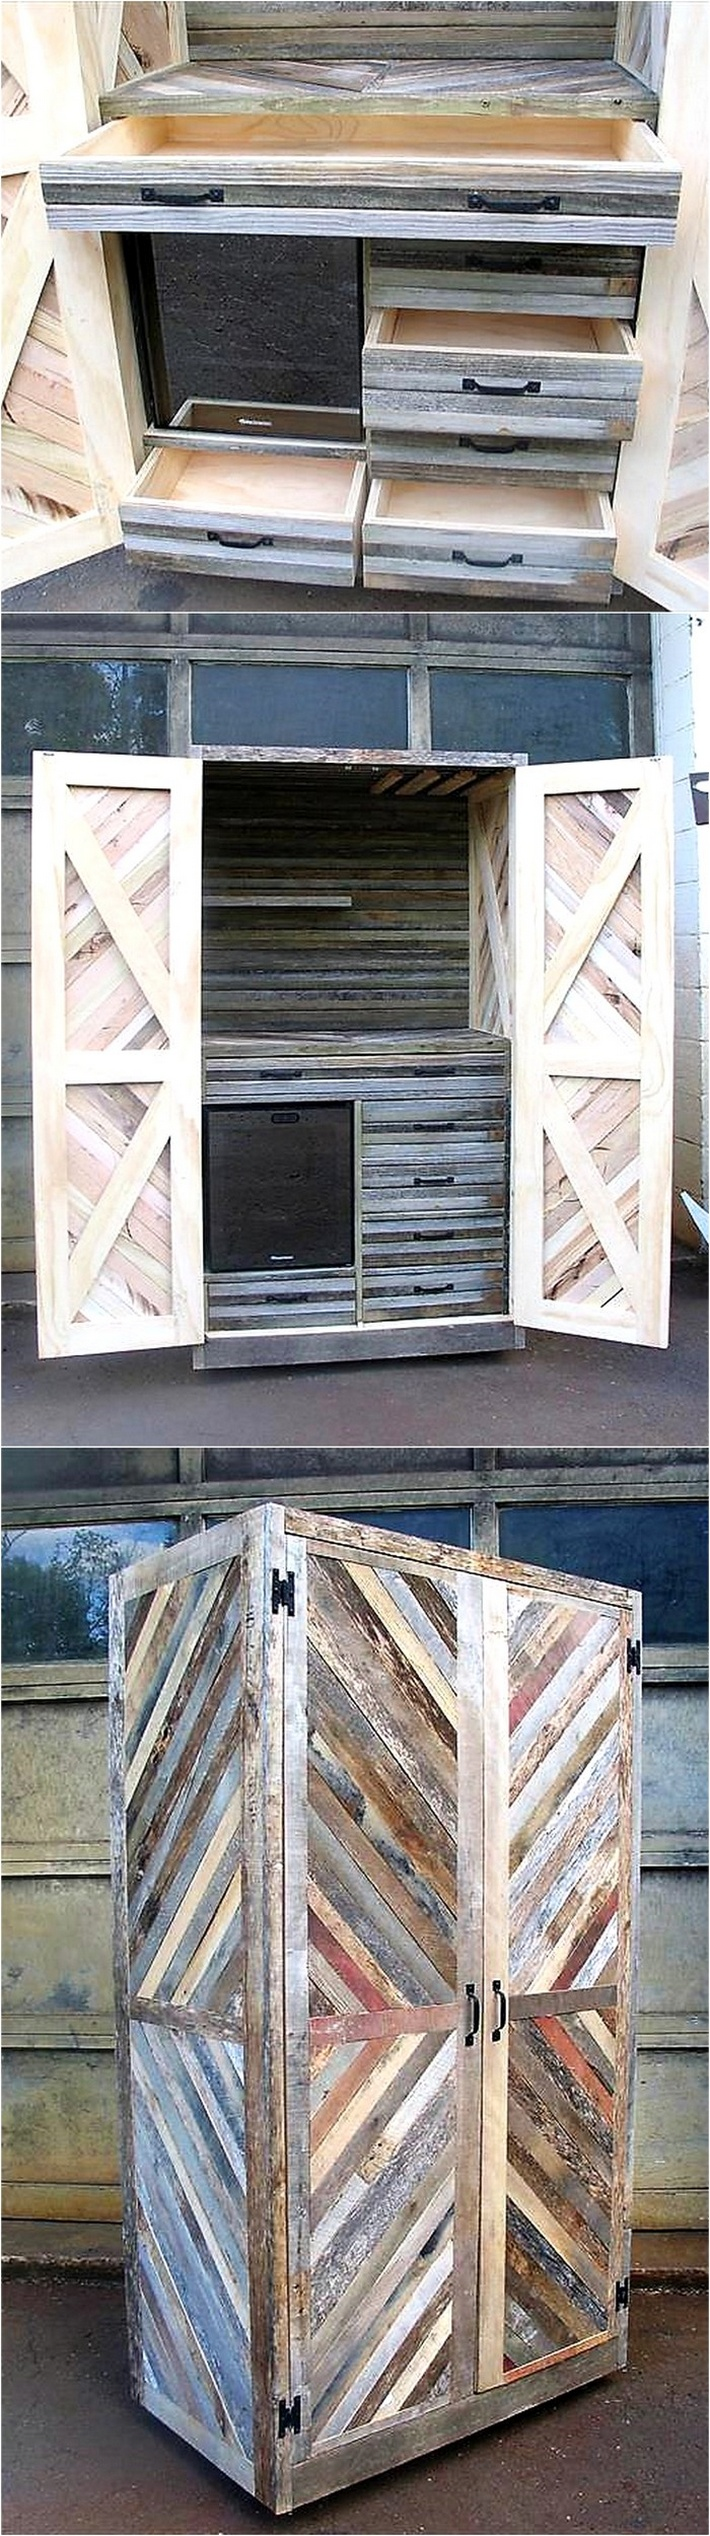 upcycled-pallets-closet